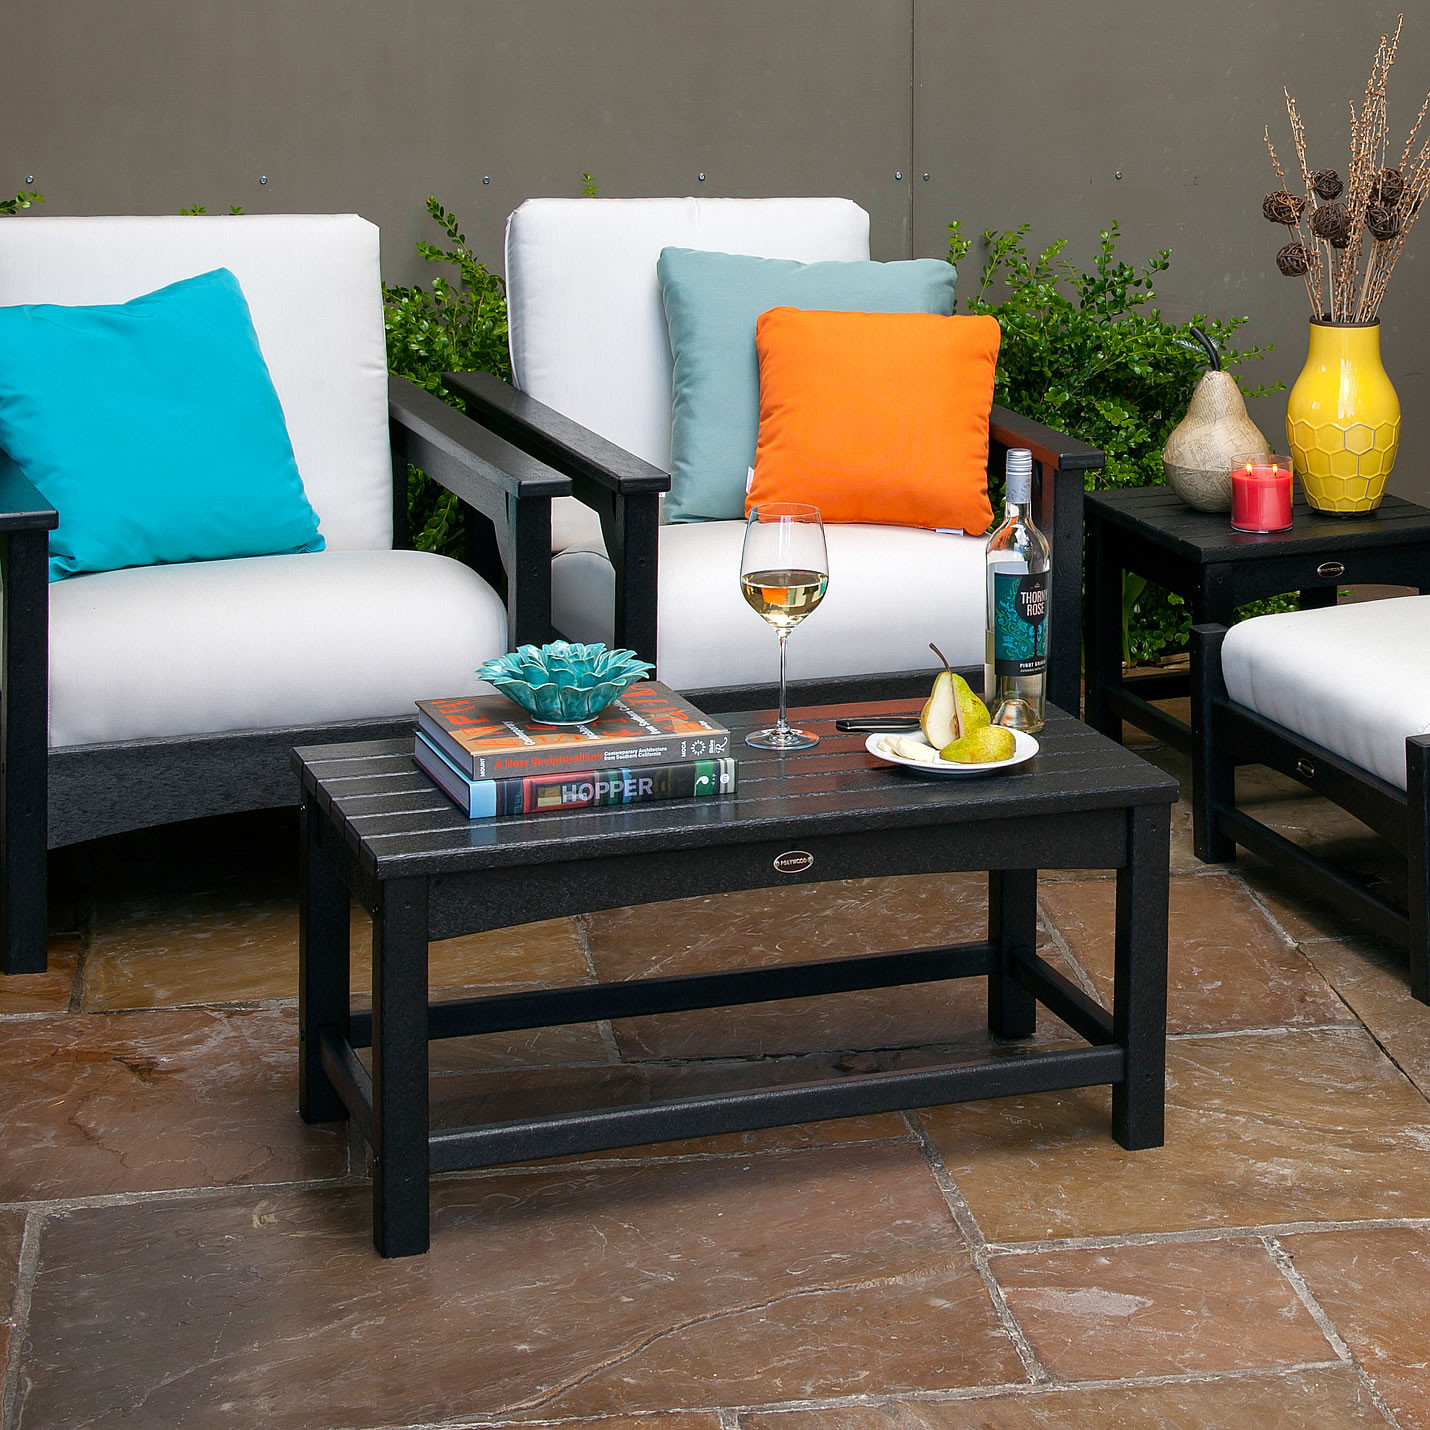 POLYWOOD Club Coffee Table Mission Collection POLYWOOD Outdoor - Polywood coffee table